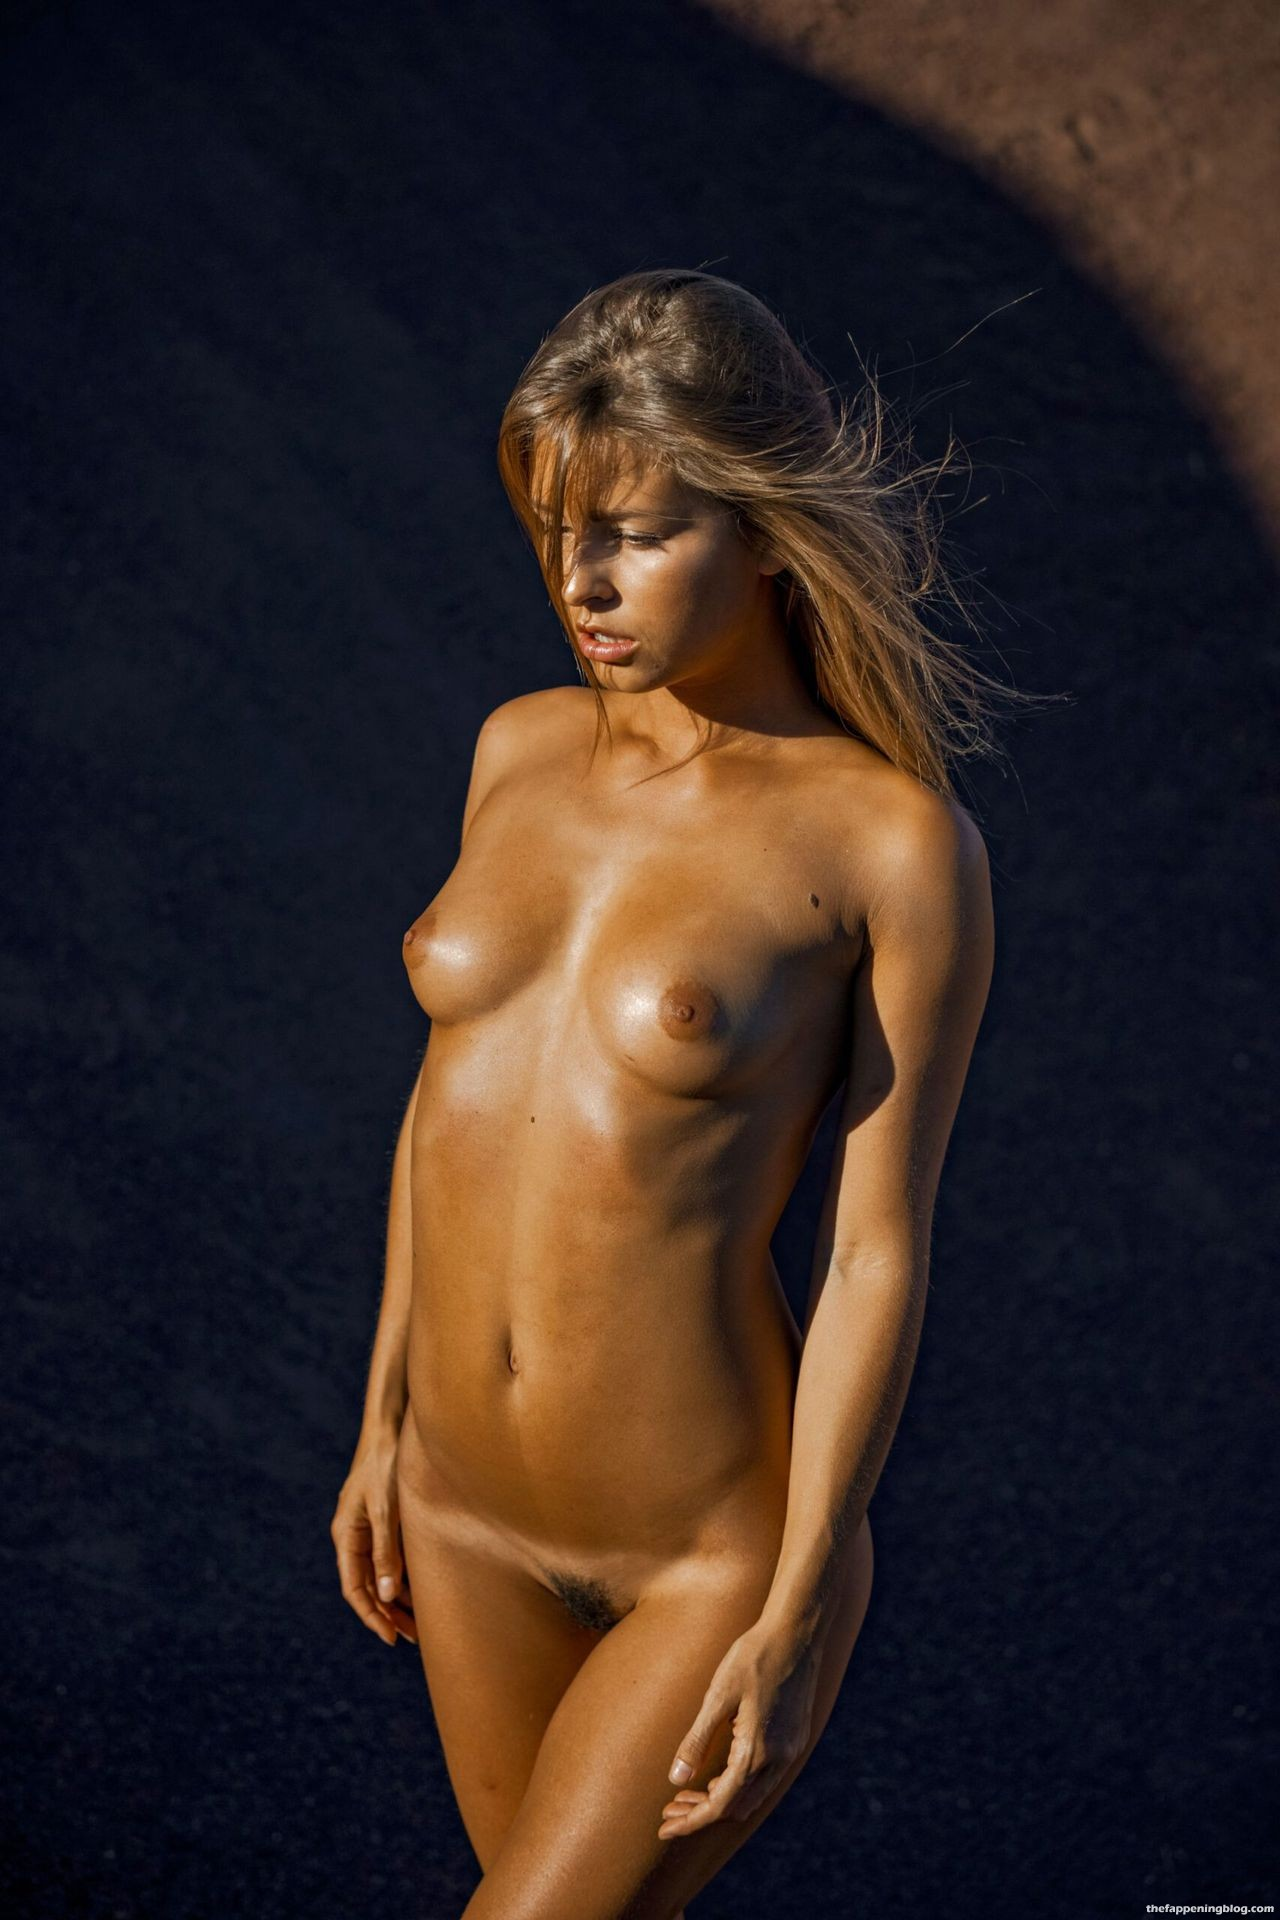 Marisa-Papen-Stunning-Naked-Body-32-1-scaled1-thefappeningblog.com_.jpg